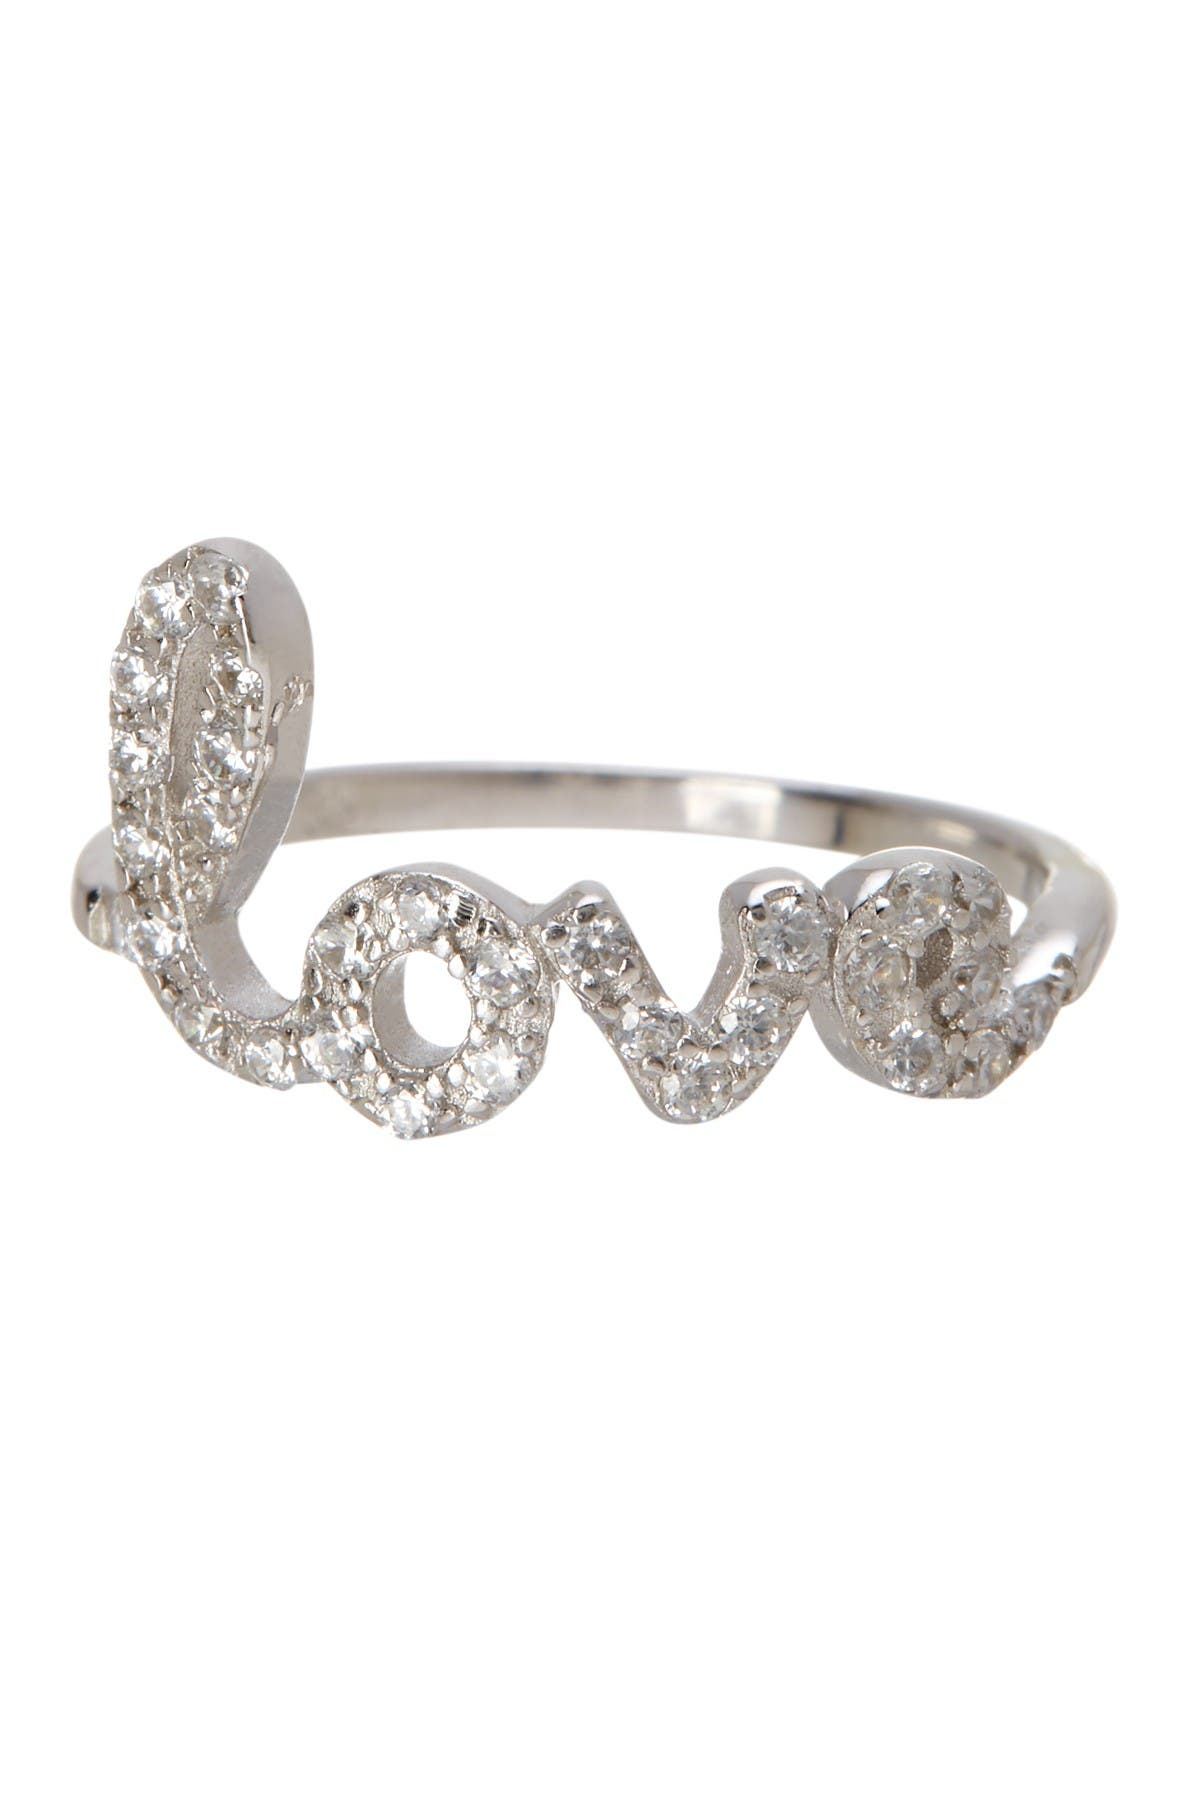 Image of ADORNIA Sterling Silver Pave Swarovski Crystal Cursive Love Ring